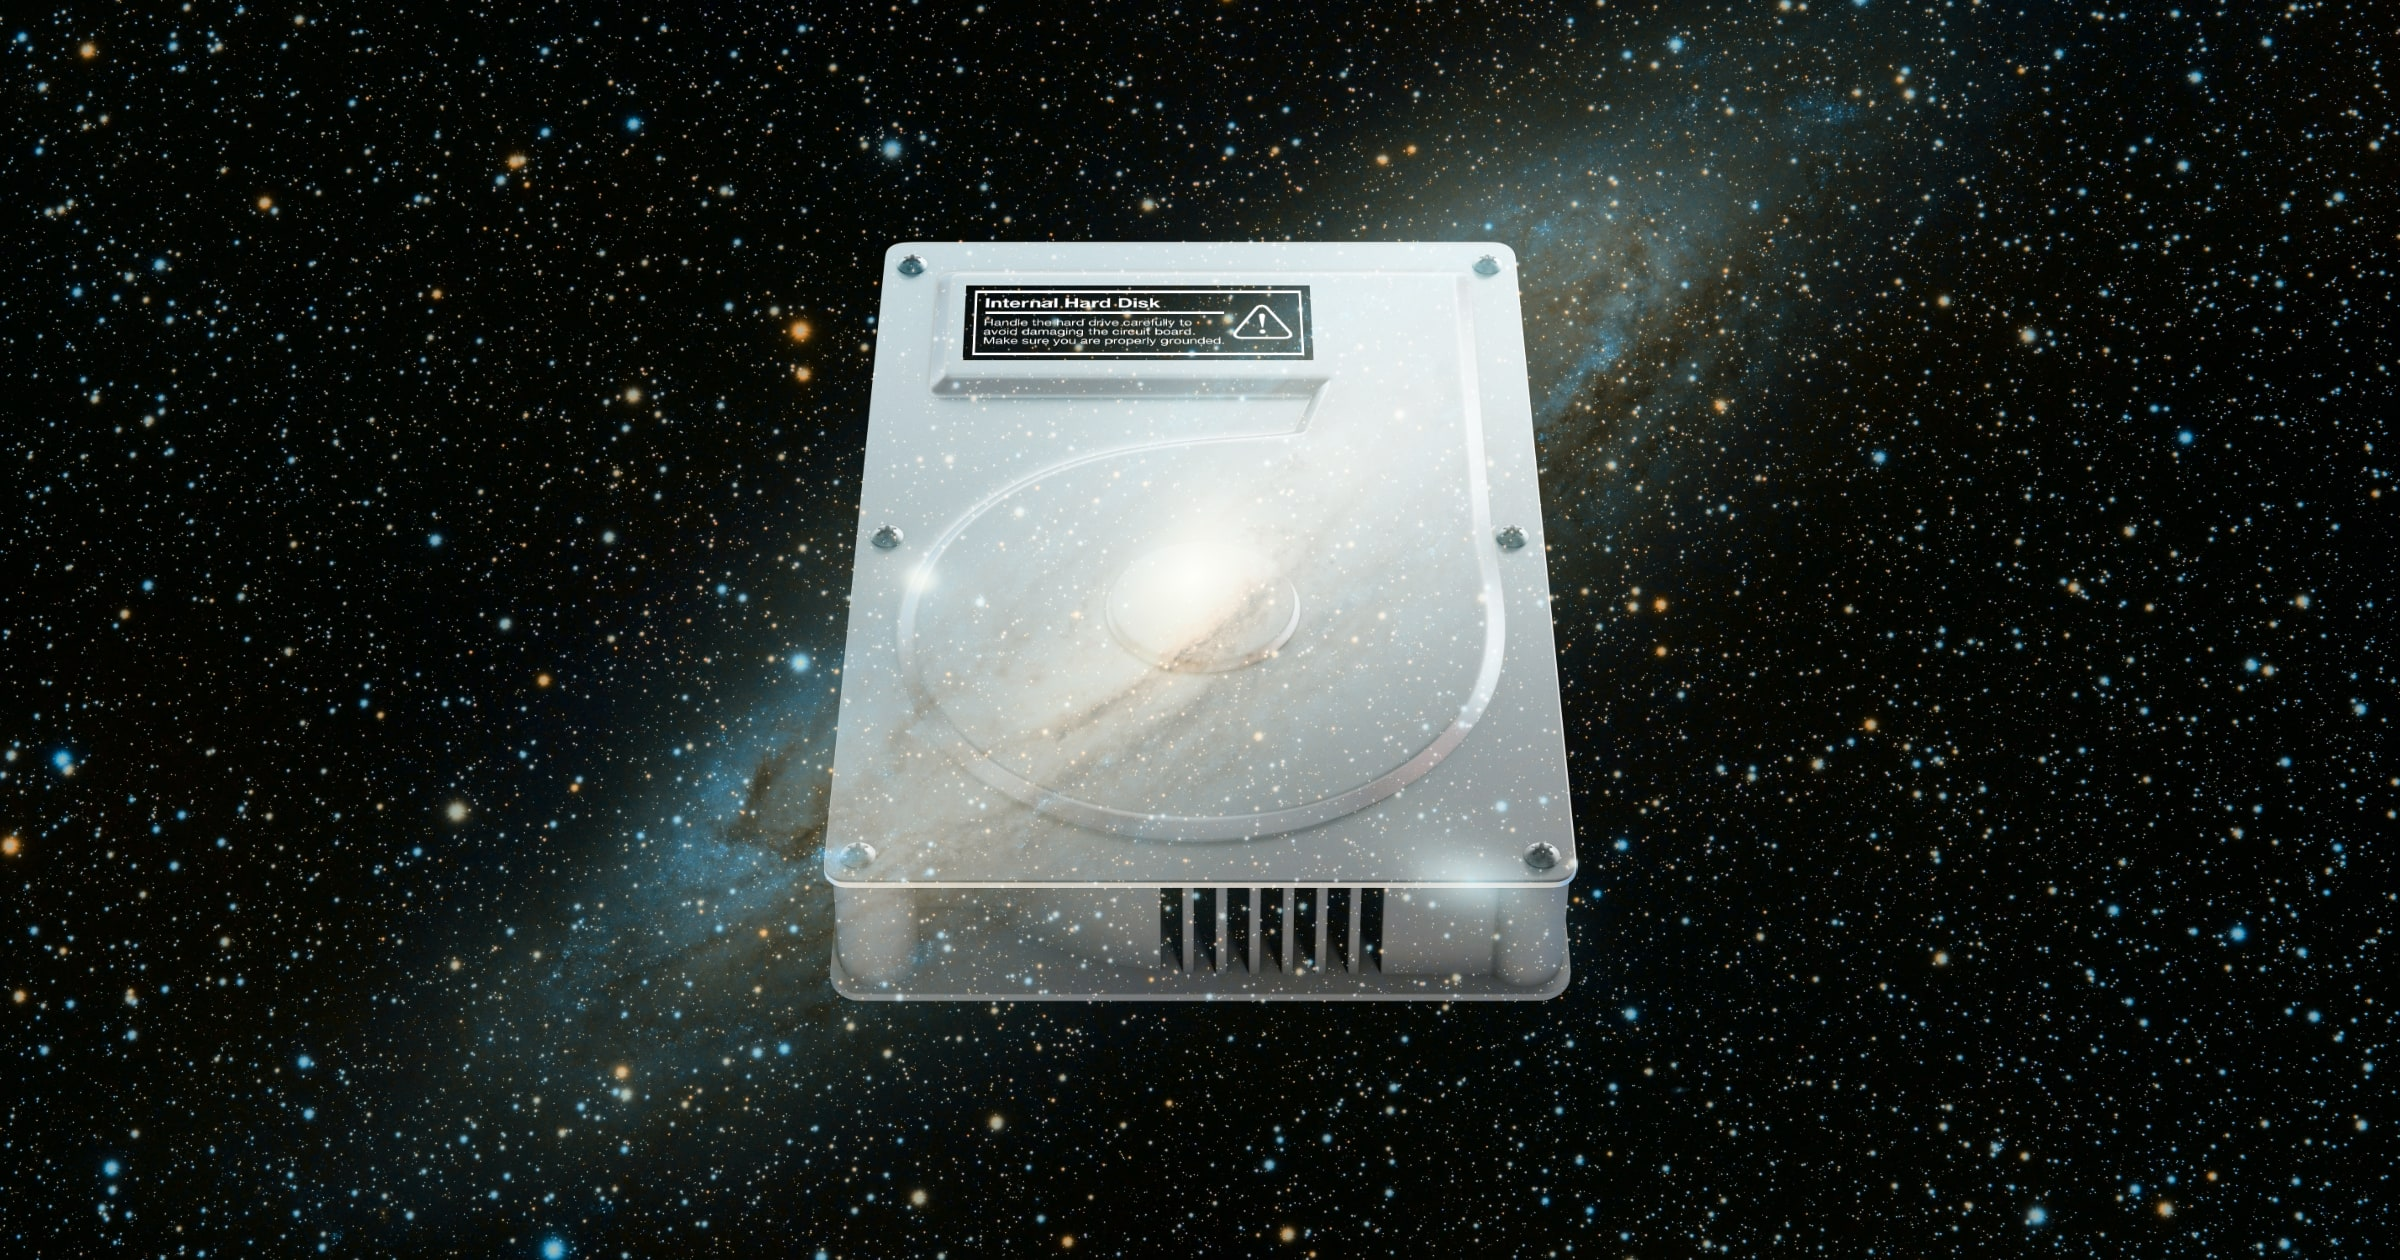 hard drive in space